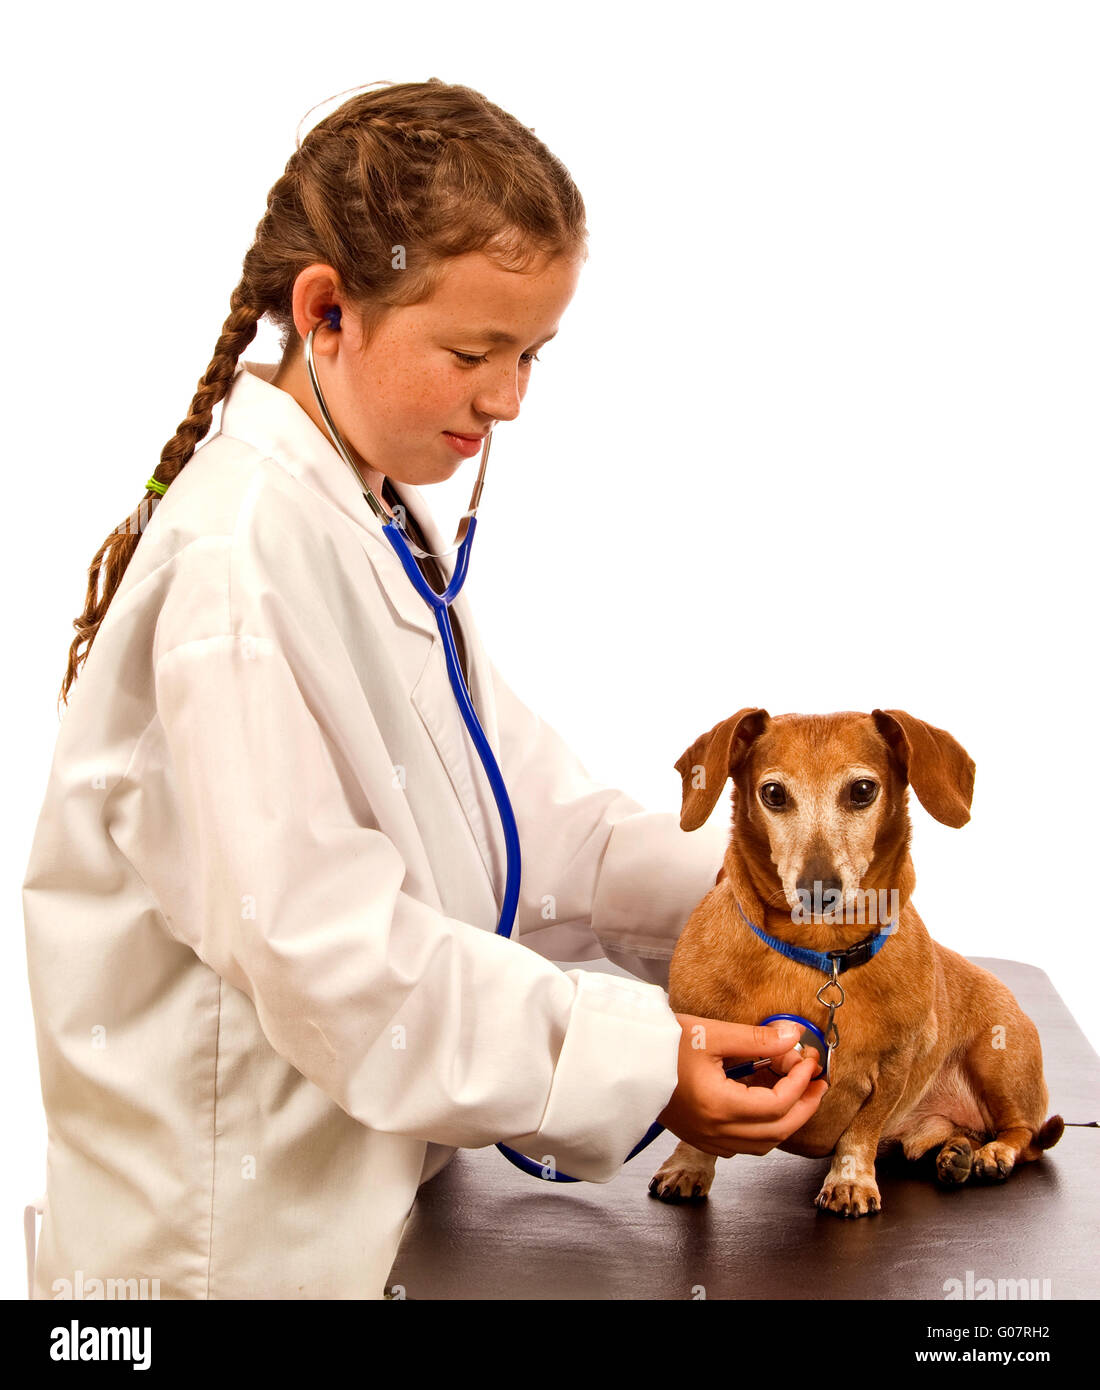 Little Girl Playing Doctor or Veterinarian - Stock Image